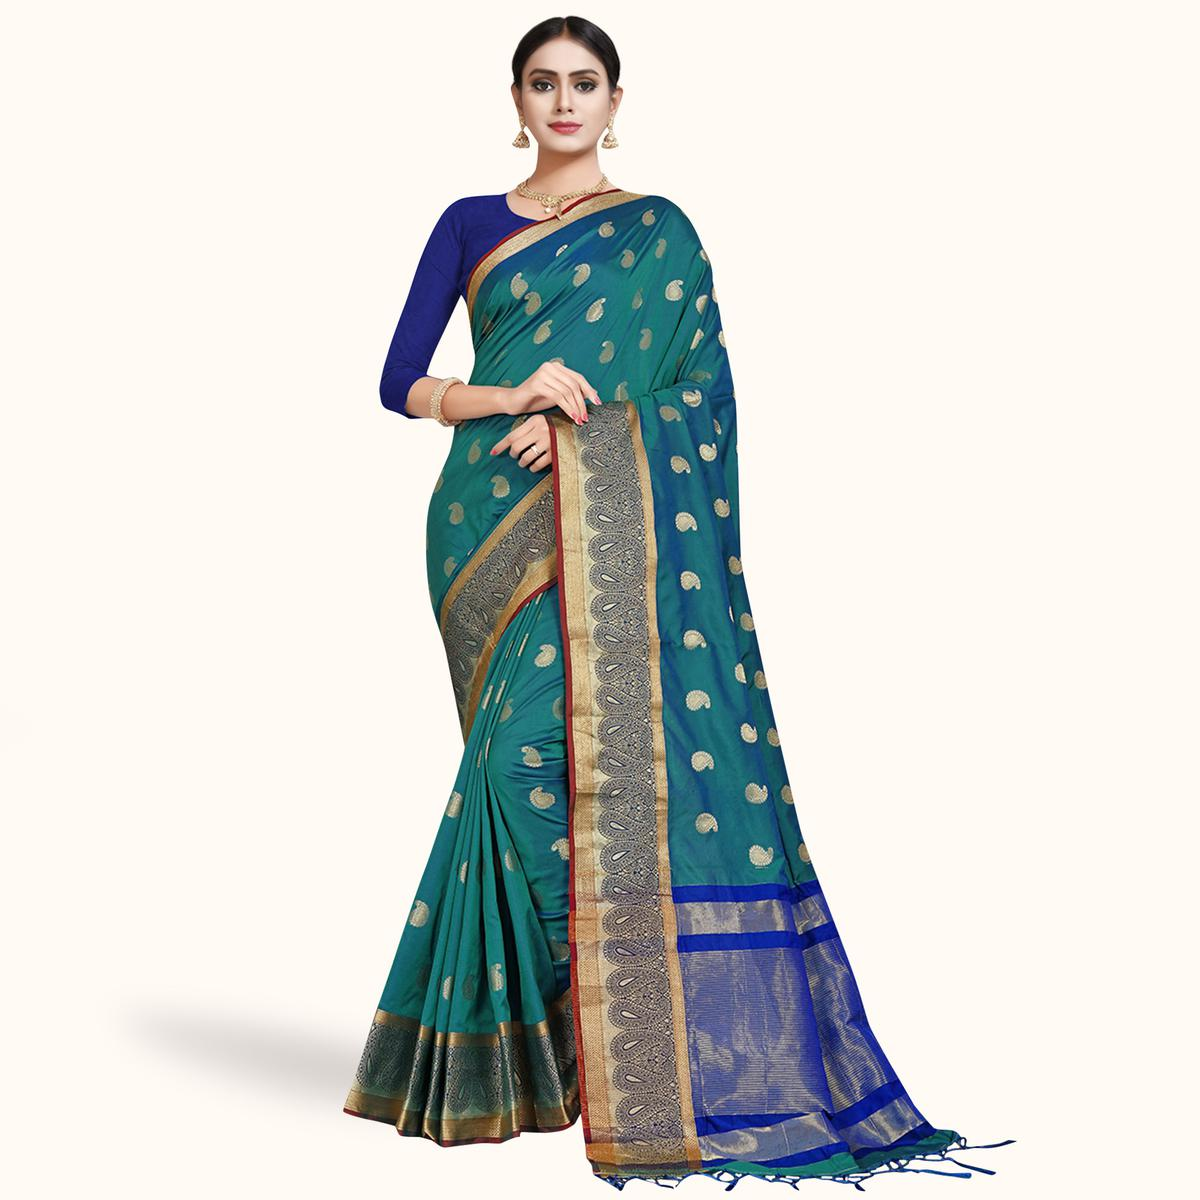 Engrossing Teal Blue Colored Festive Wear Woven Silk Saree